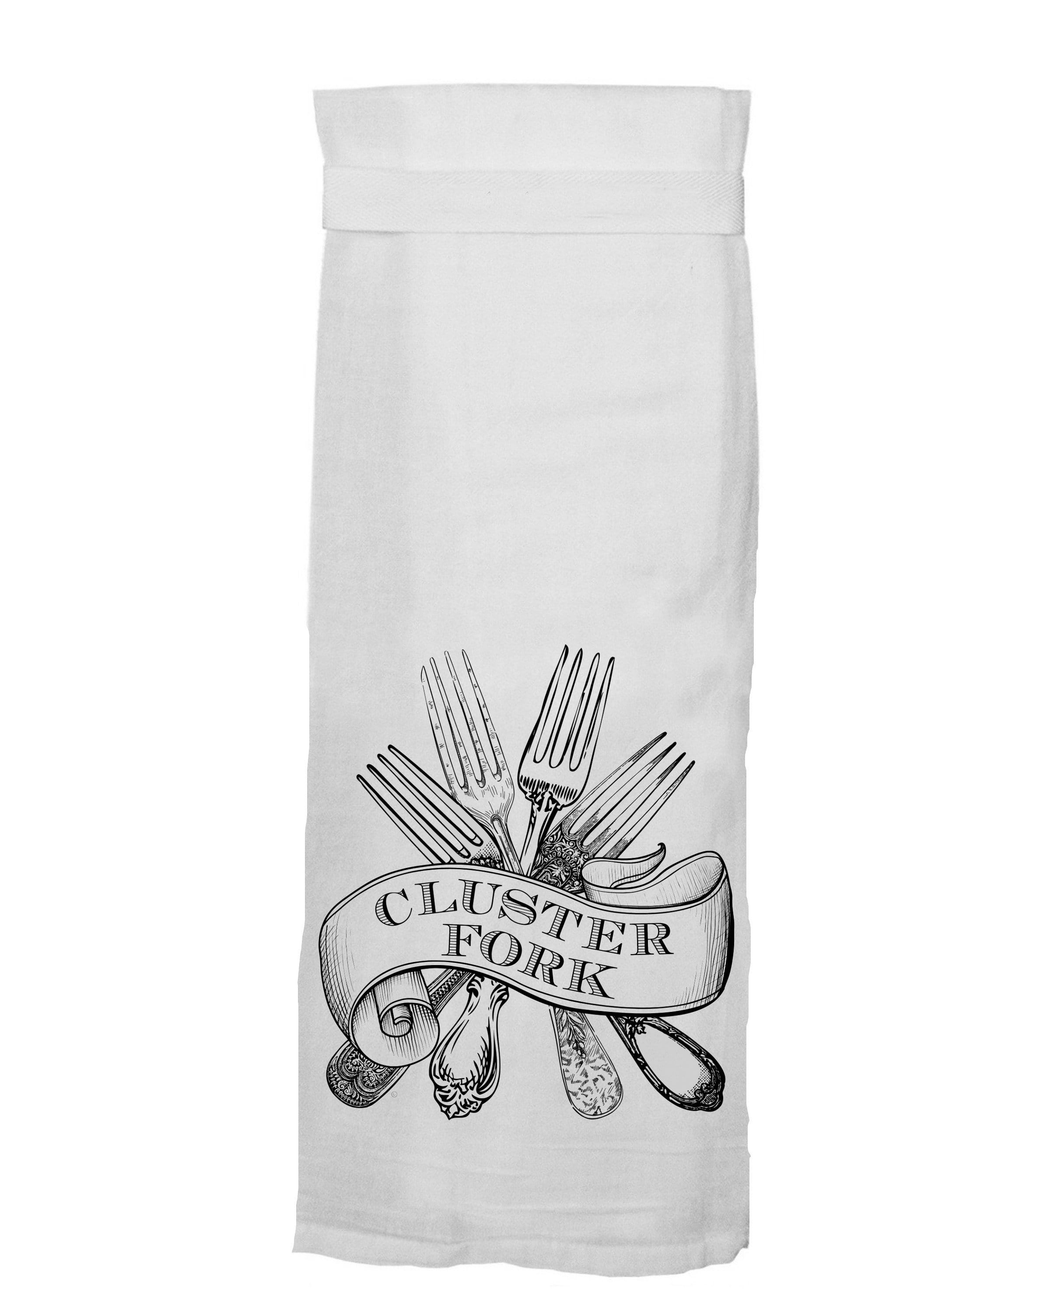 Cluster Fork Funny Kitchen Towel From Twisted Wares